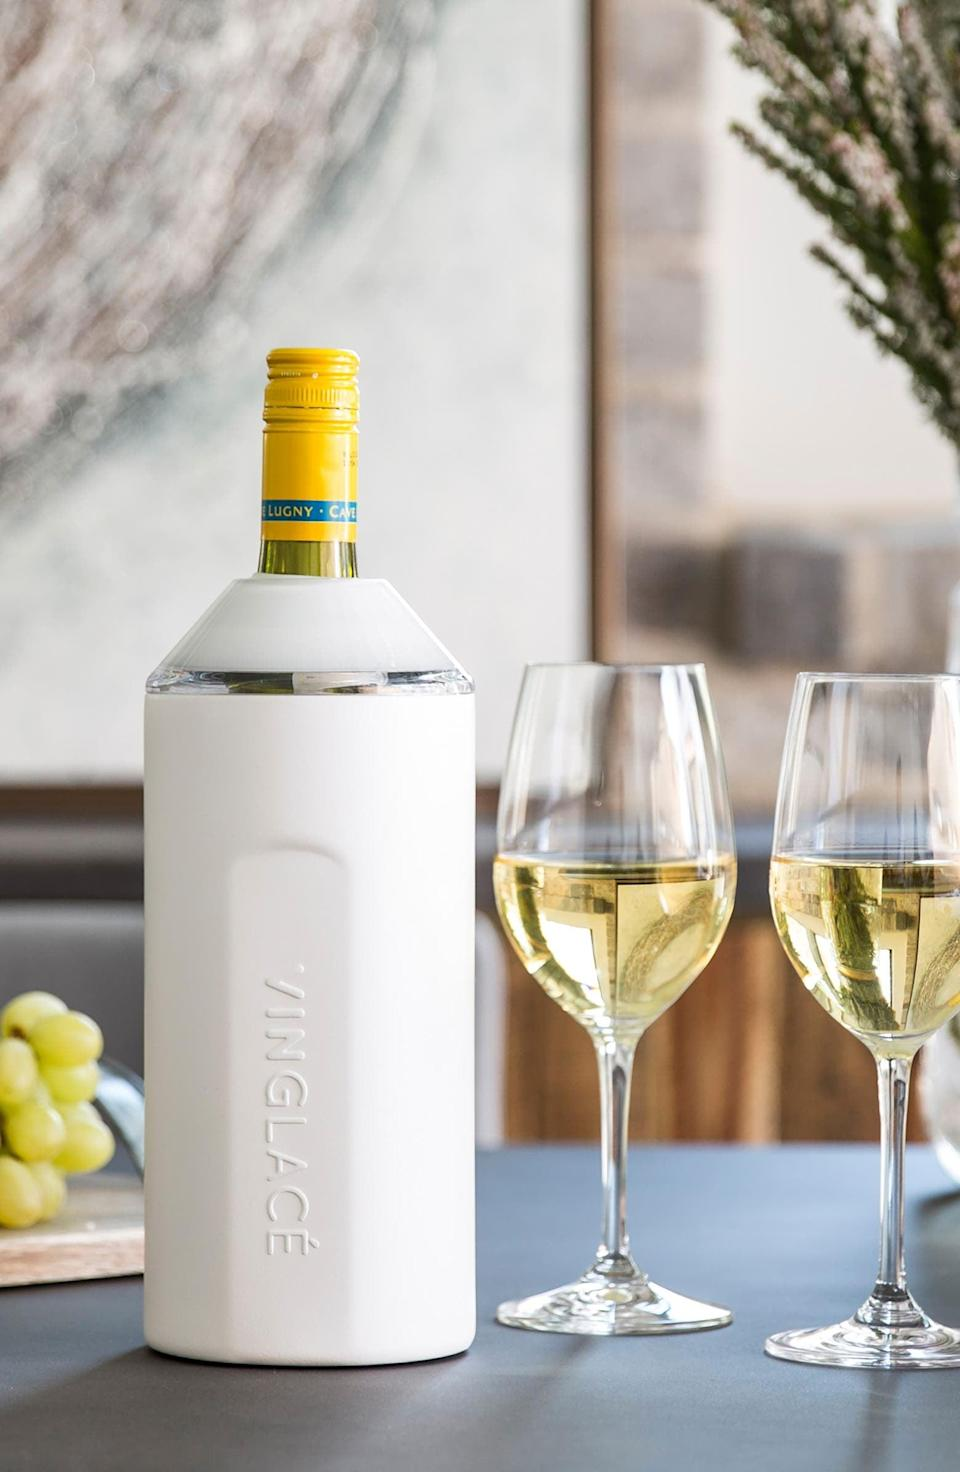 <p>Keep all your wine cold and crisp with this <span>Vinglace Wine Chiller</span> ($90).</p>